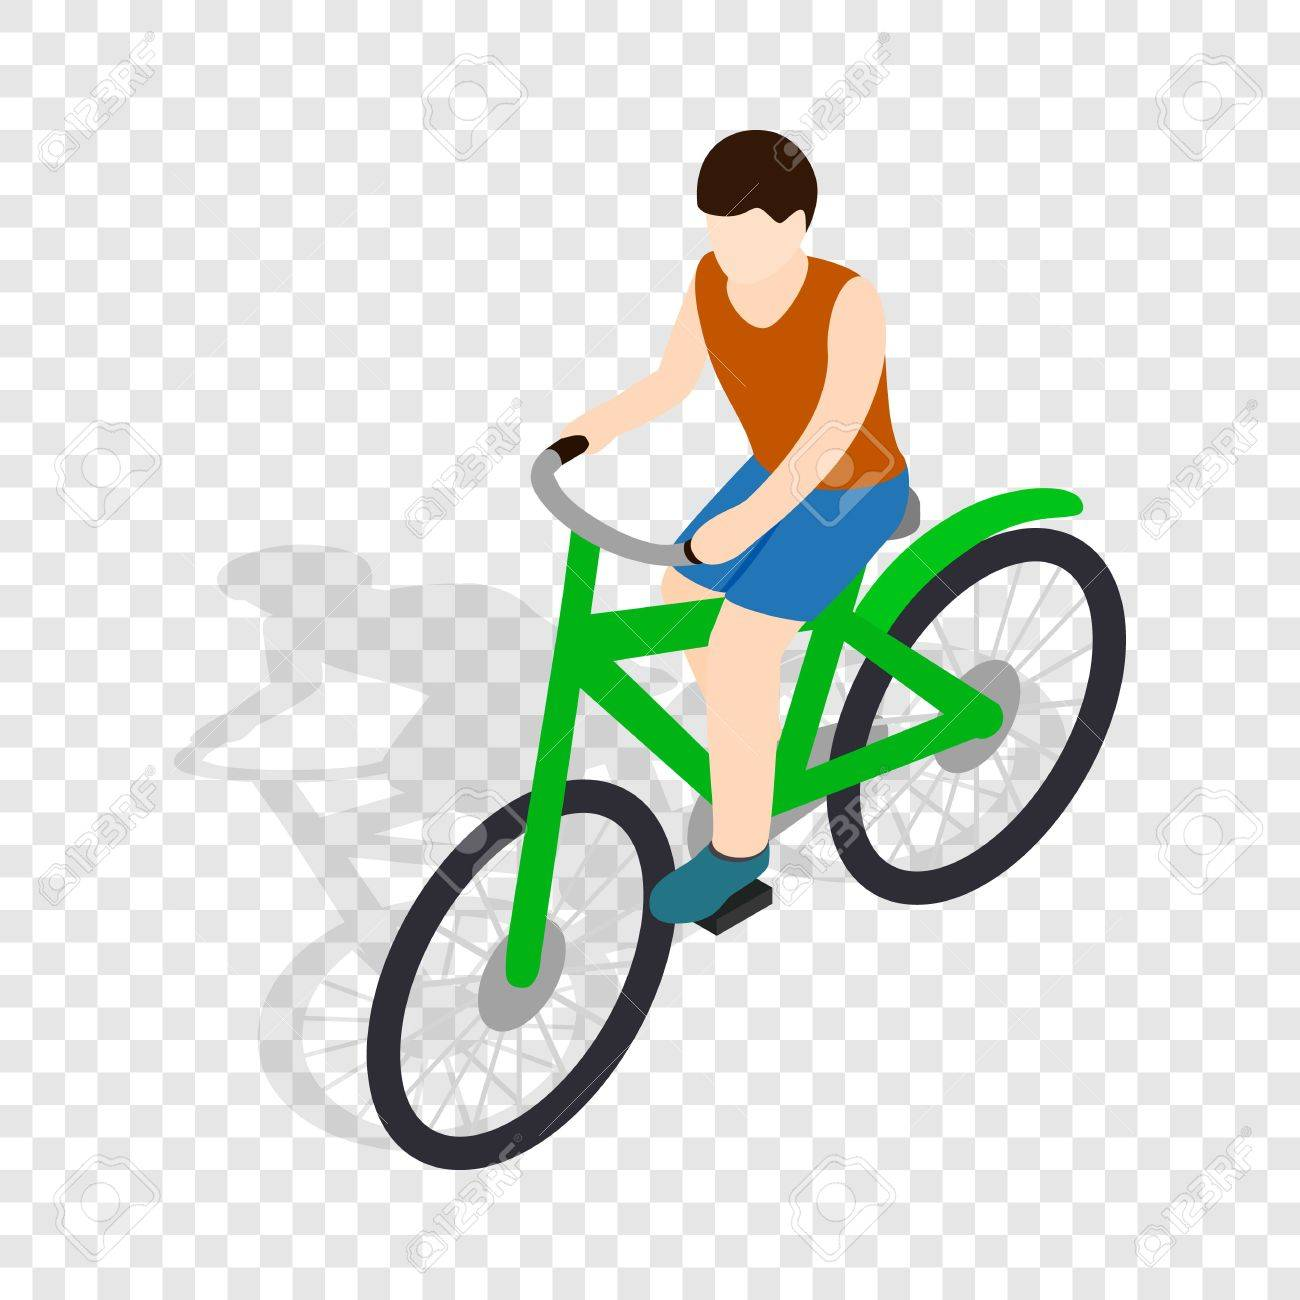 Bicycle Clipart Transparent Background.